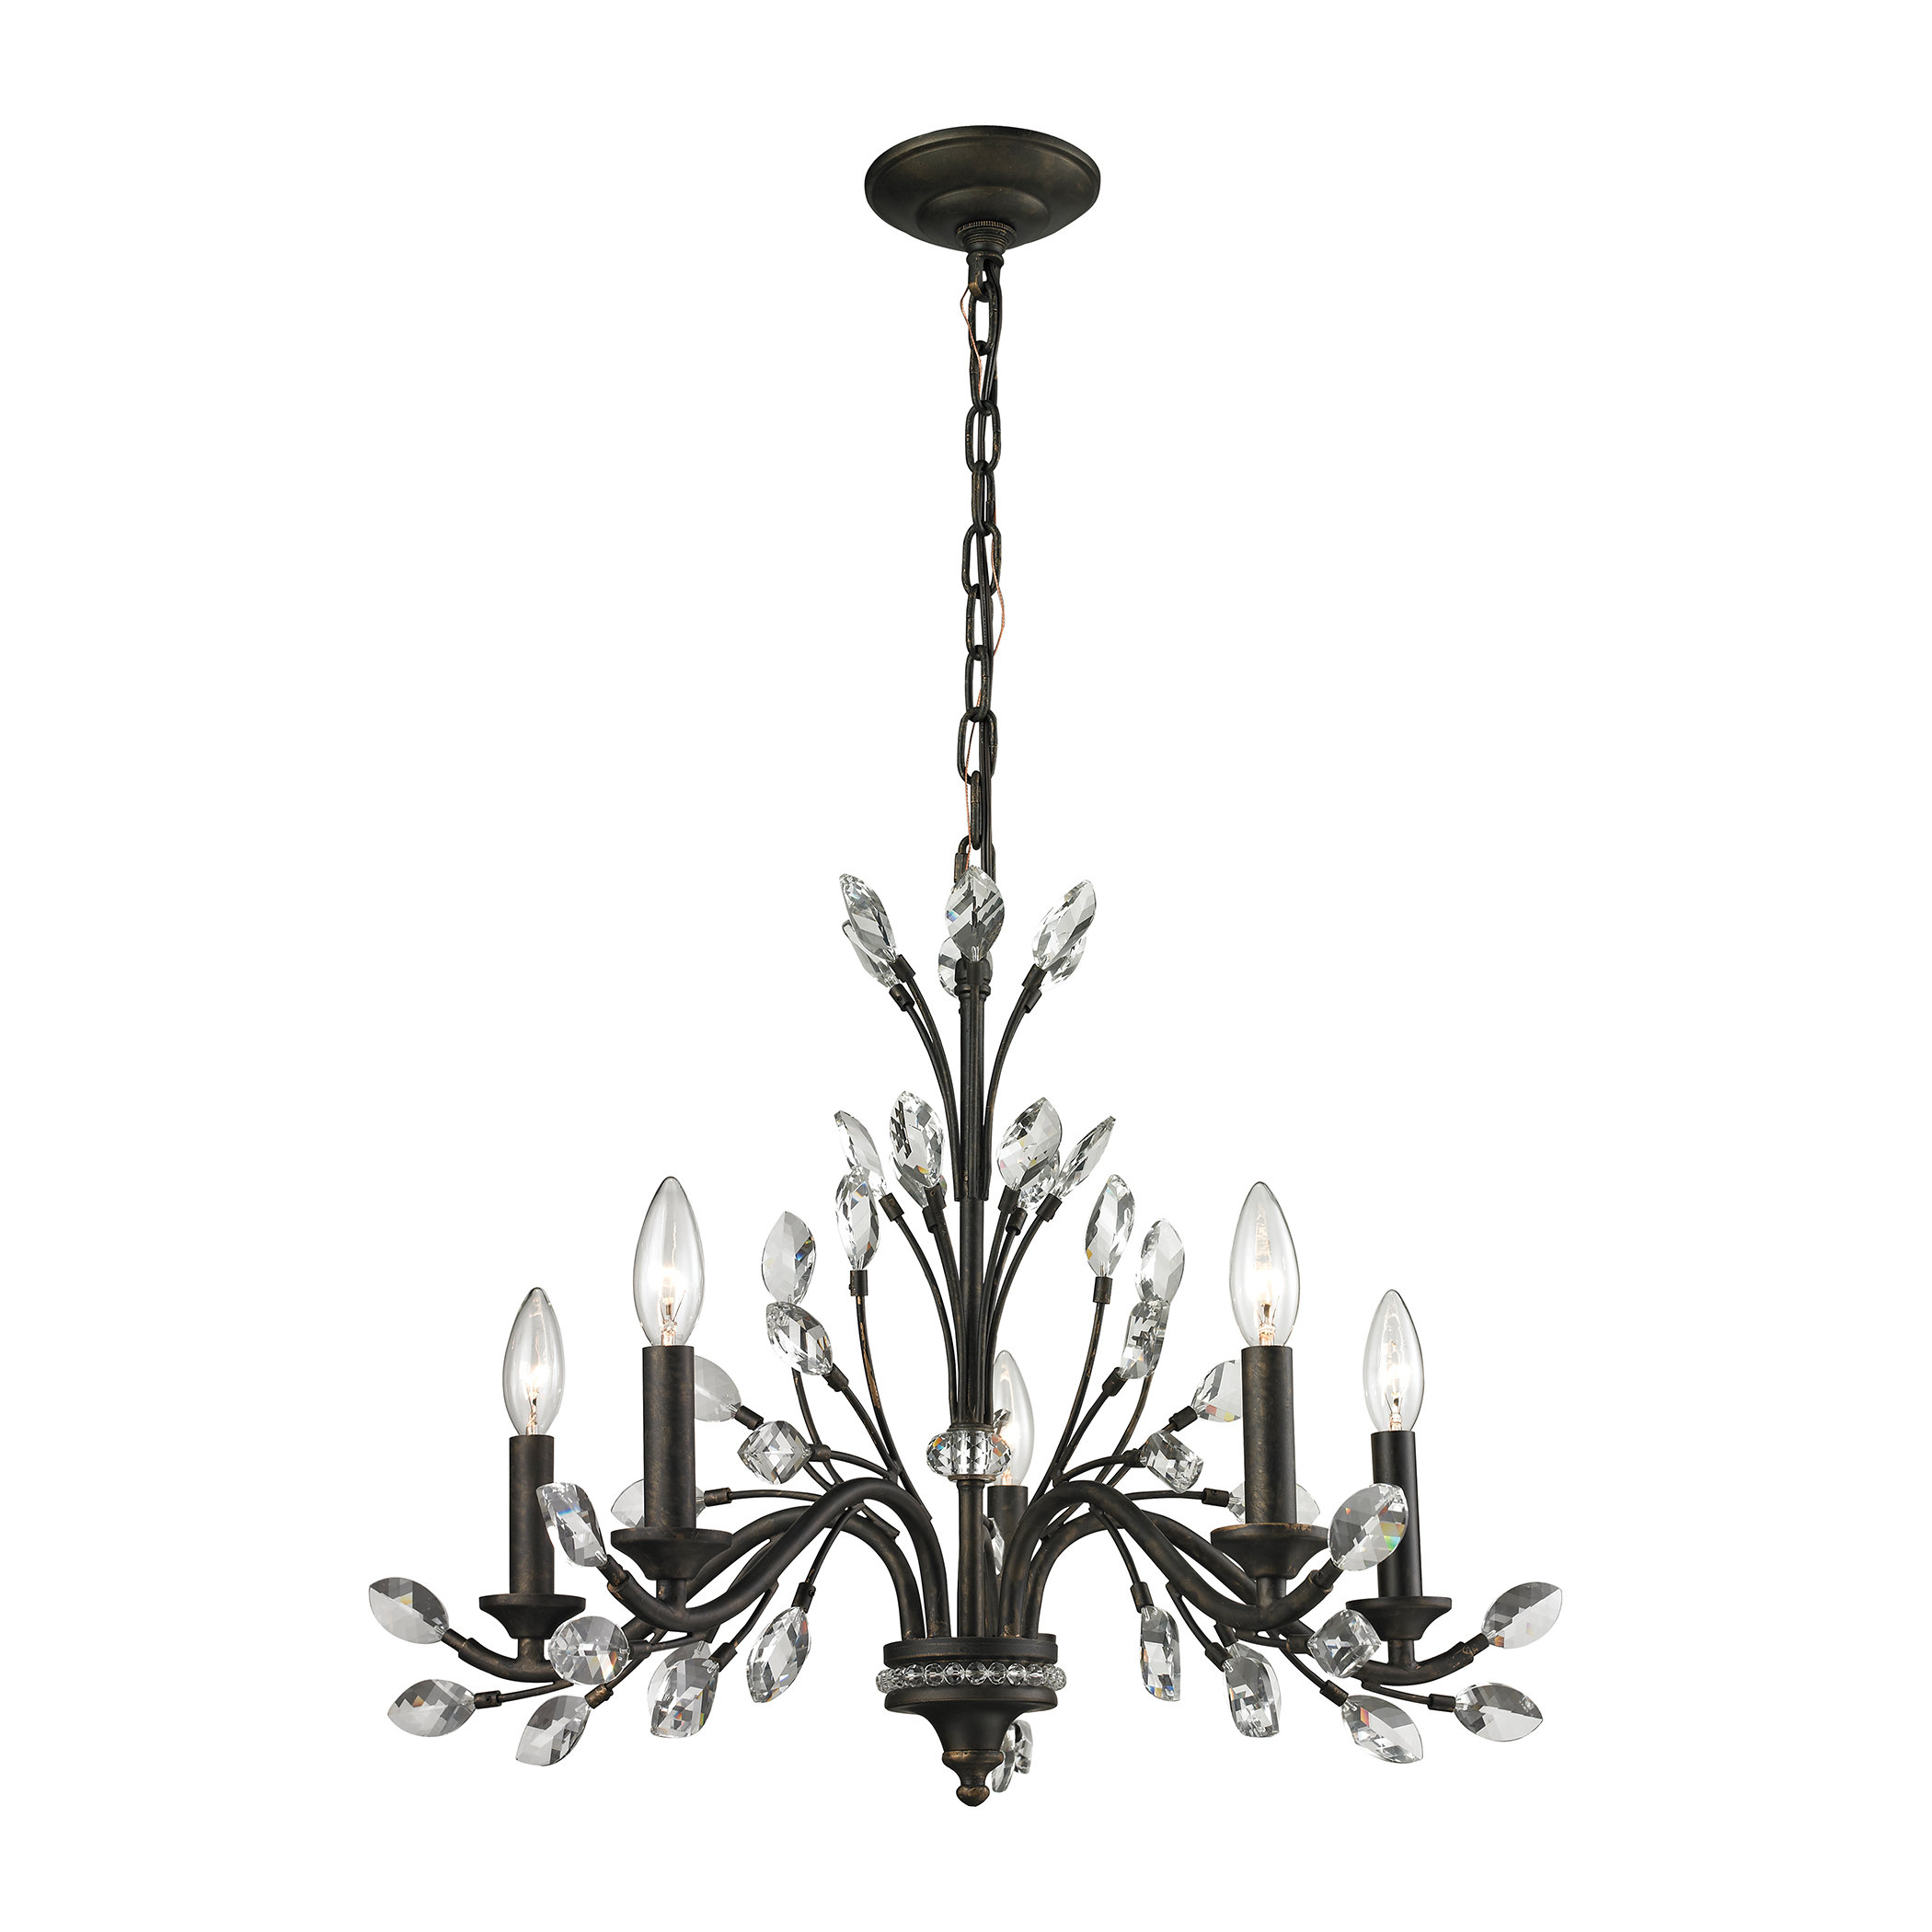 Hammel 5 Light Candle Style Chandelier With Berger 5 Light Candle Style Chandeliers (View 21 of 30)